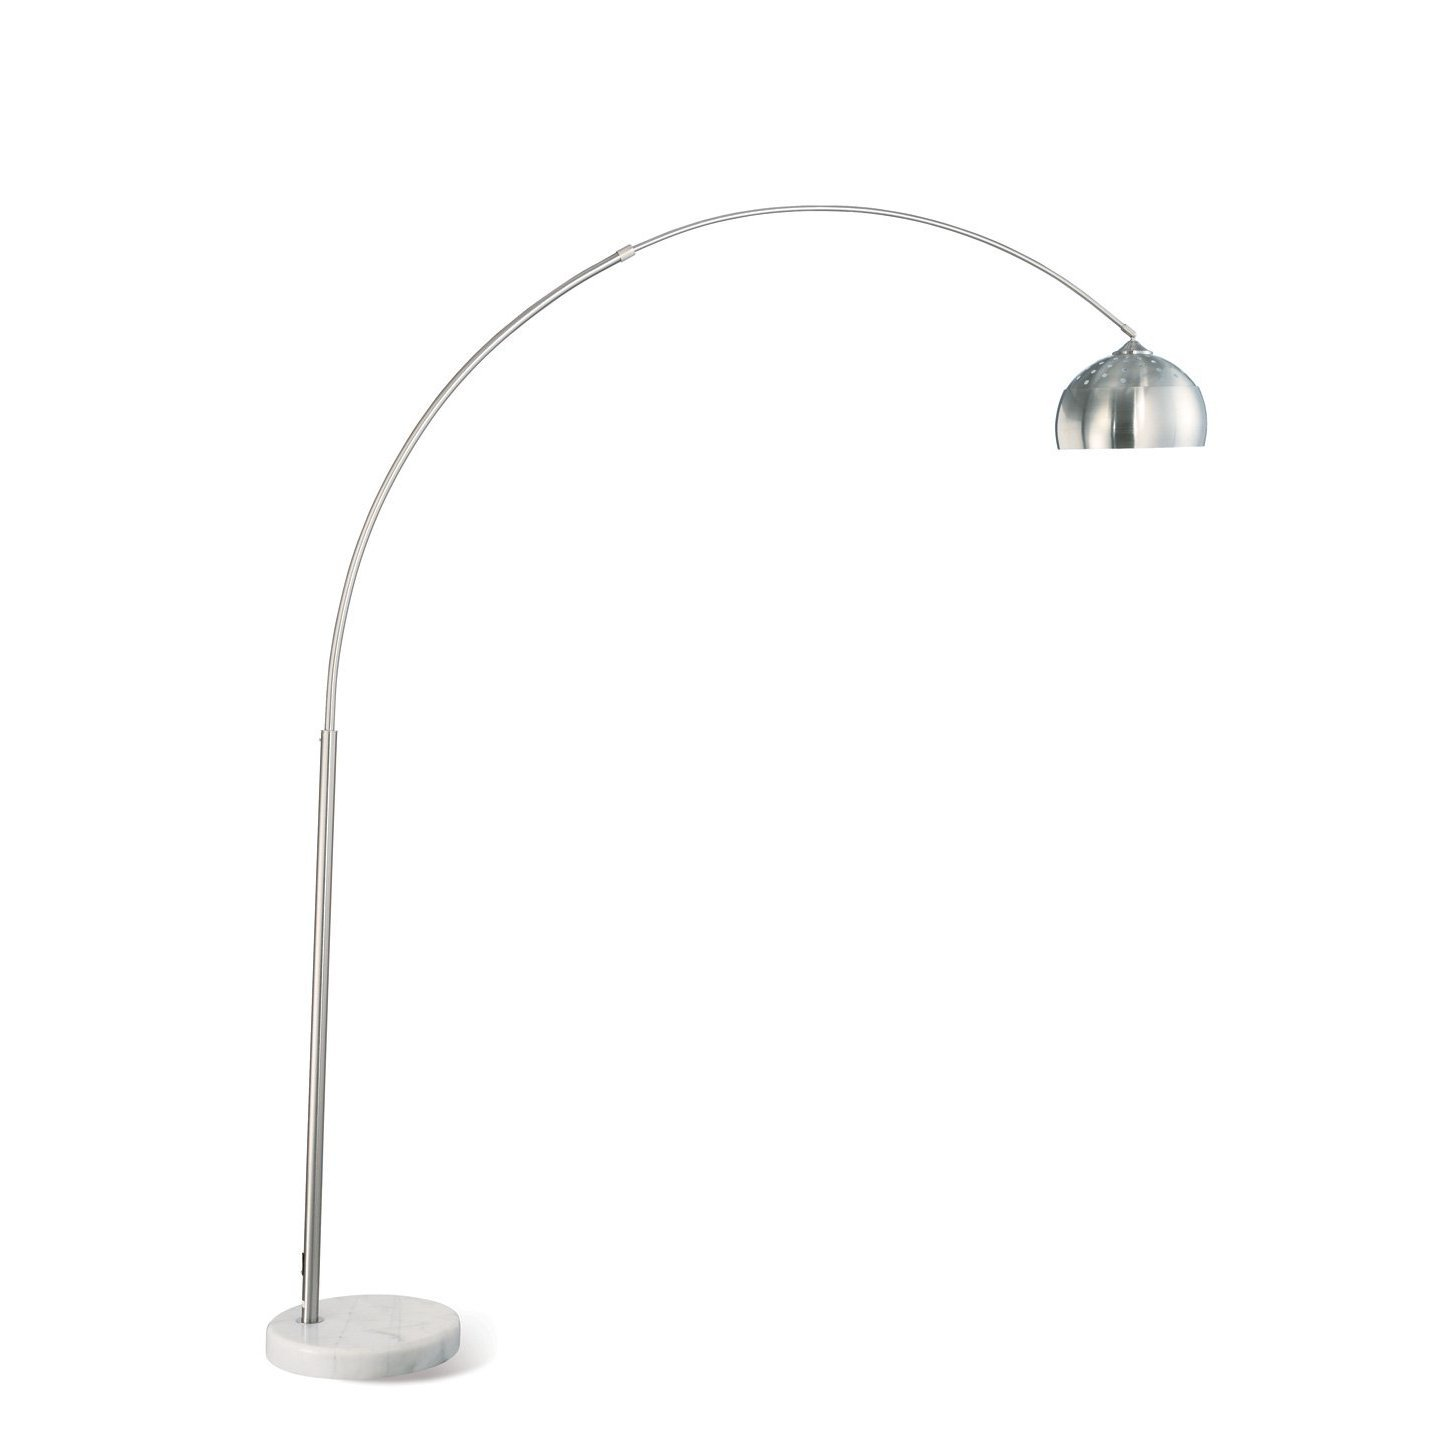 Accent Metal Shade Floor Lamp - Coaster 901199 & FREE MINI TOOL BOX (ml) by Coaster Home Furnishings